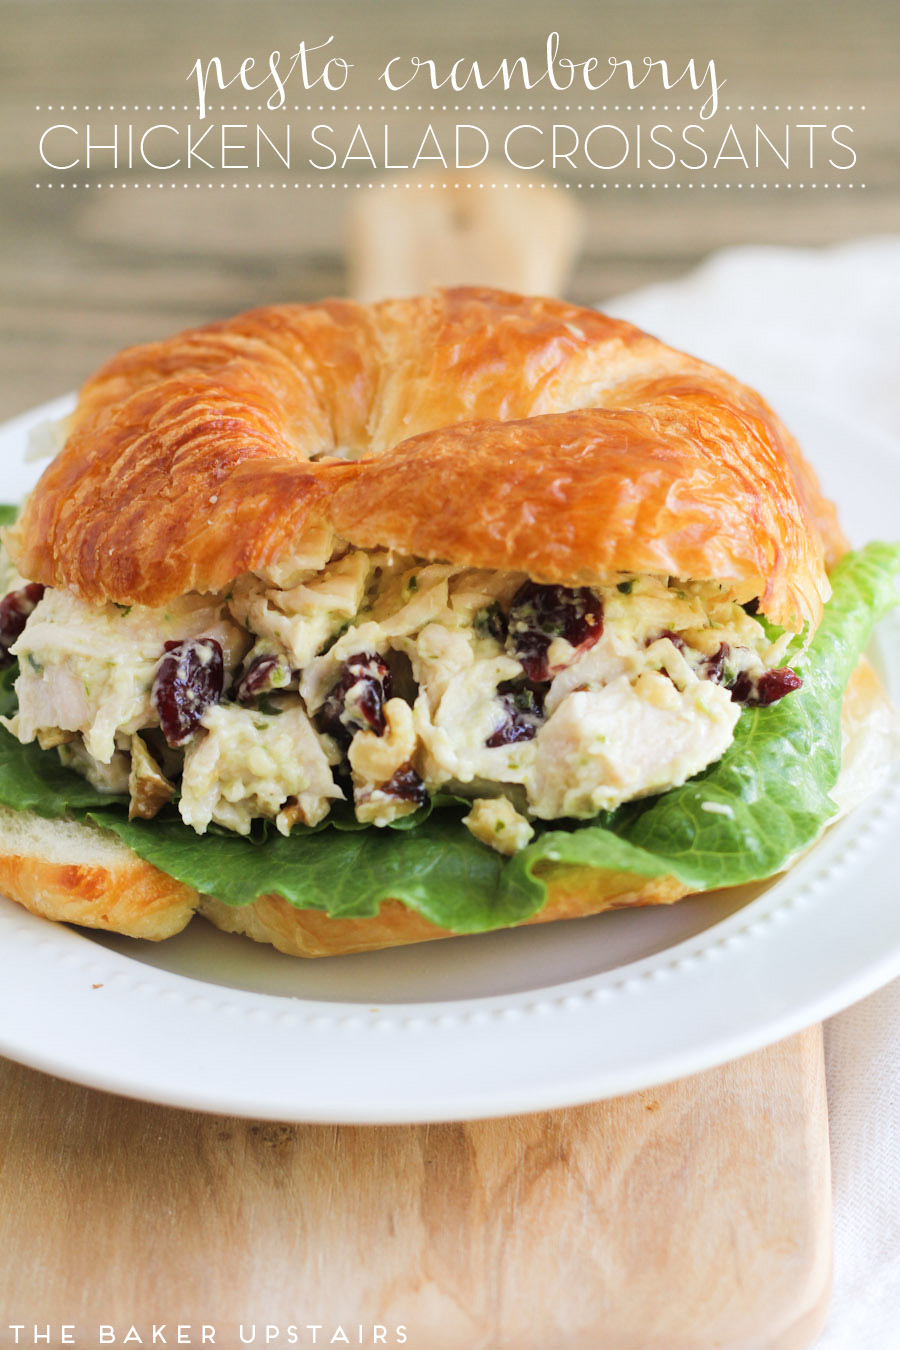 The Baker Upstairs Pesto Cranberry Chicken Salad Croissants